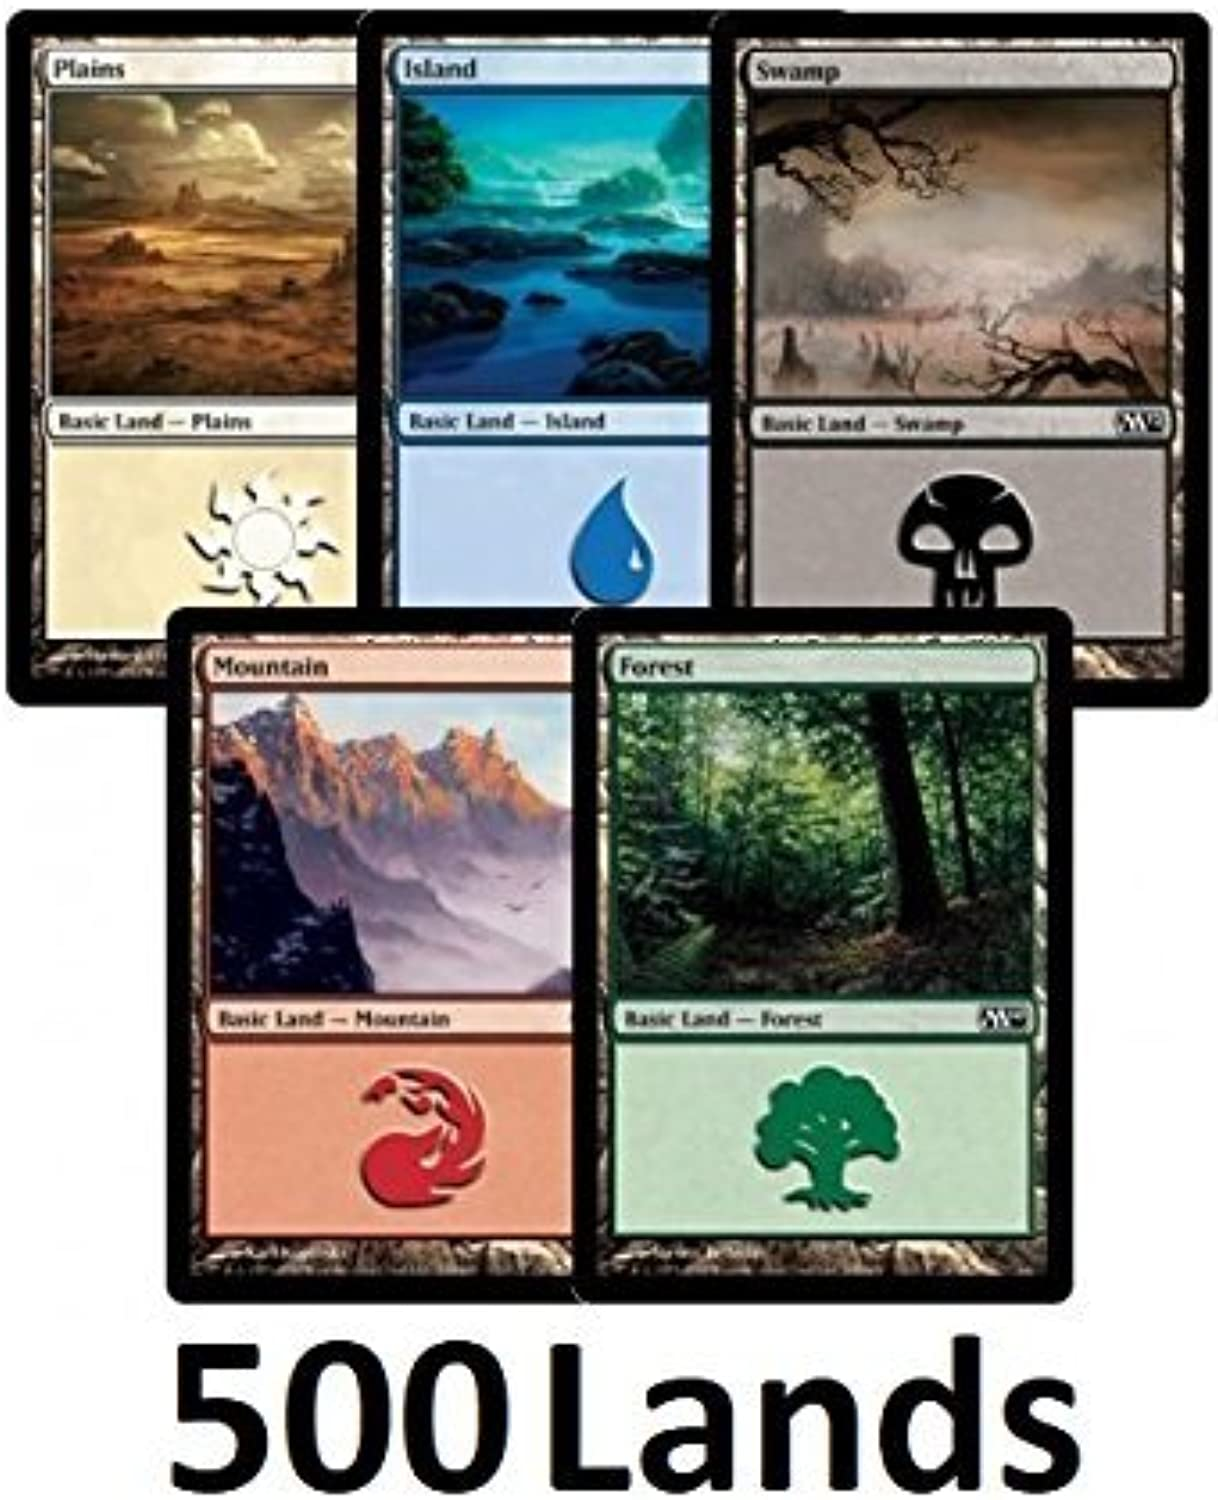 500 Magic  The Gathering Basic Les - 100 of Each Le Type (Plains, Isles, Swamps, Mountains, Forests) by Magic  the Gathering